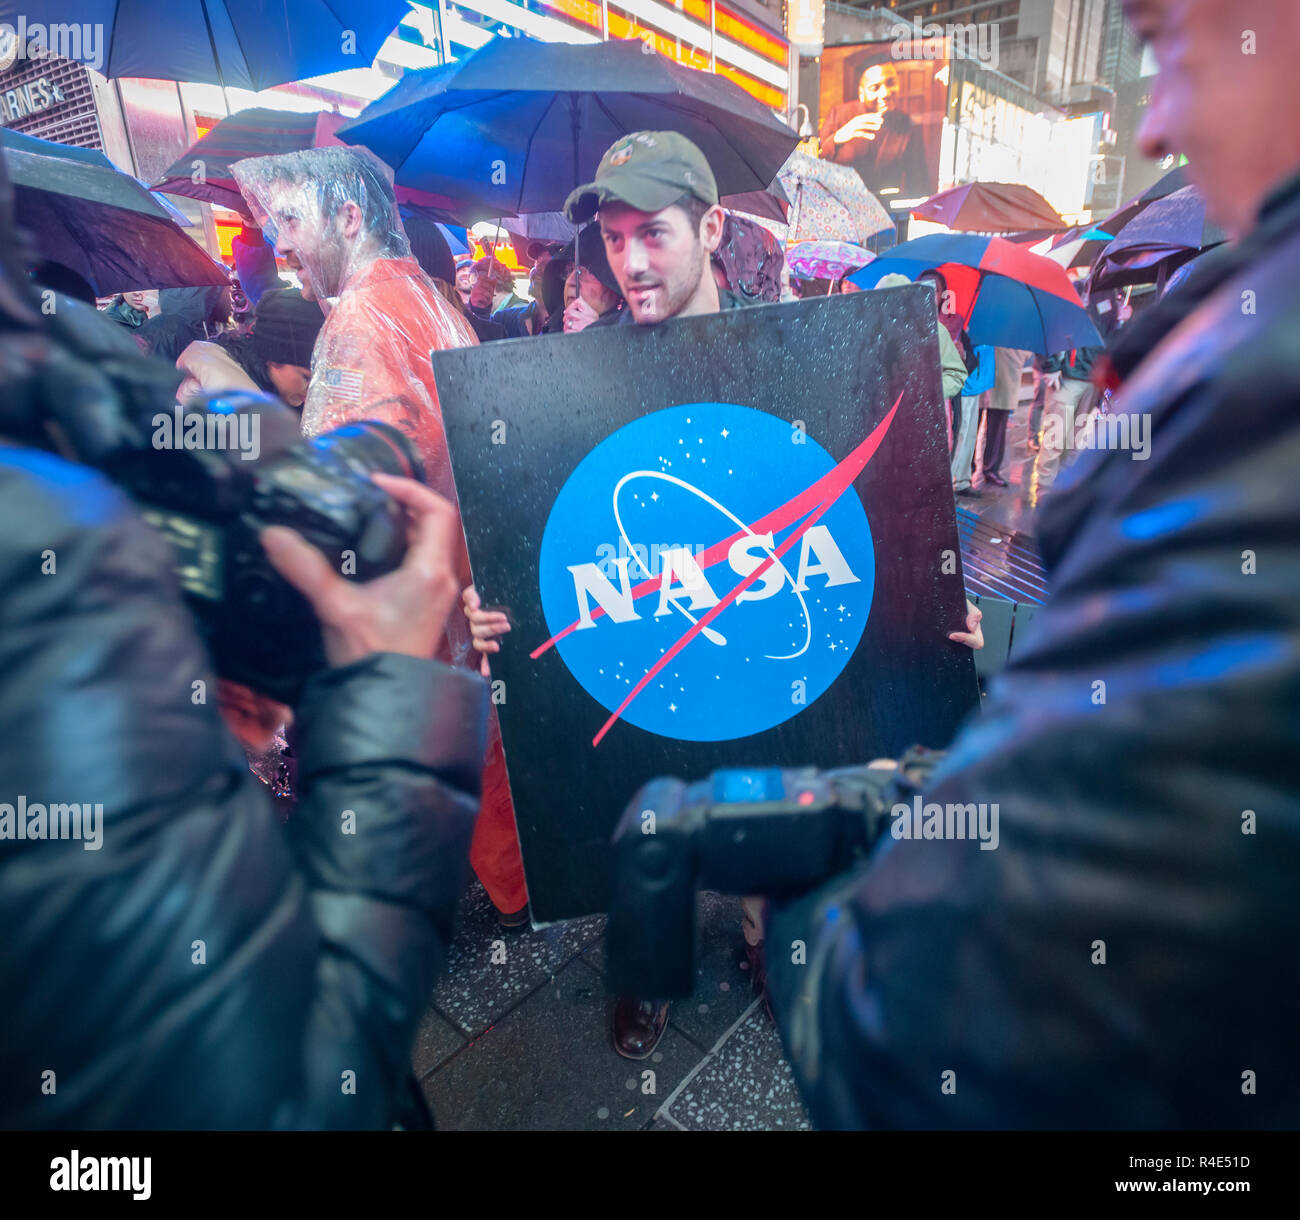 New York, USA. 26th November, 2018. Space exploration enthusiasts brave pouring rain in Times Square in New York to watch Nasa's live coverage of the landing of the Mars InSight lander on Monday, November 26, 2018. The InSight lander survived Nasa's self-proclaimed 'seven minutes of terror' where the probe decelerated from 12,300 mph to 5 mph in the space of seven minutes for the Mars landing. During that time the craft had to rely on its pre-programmed instructions since it could not be steered by Nasa. (© Richard B. Levine) Credit: Richard Levine/Alamy Live News - Stock Image